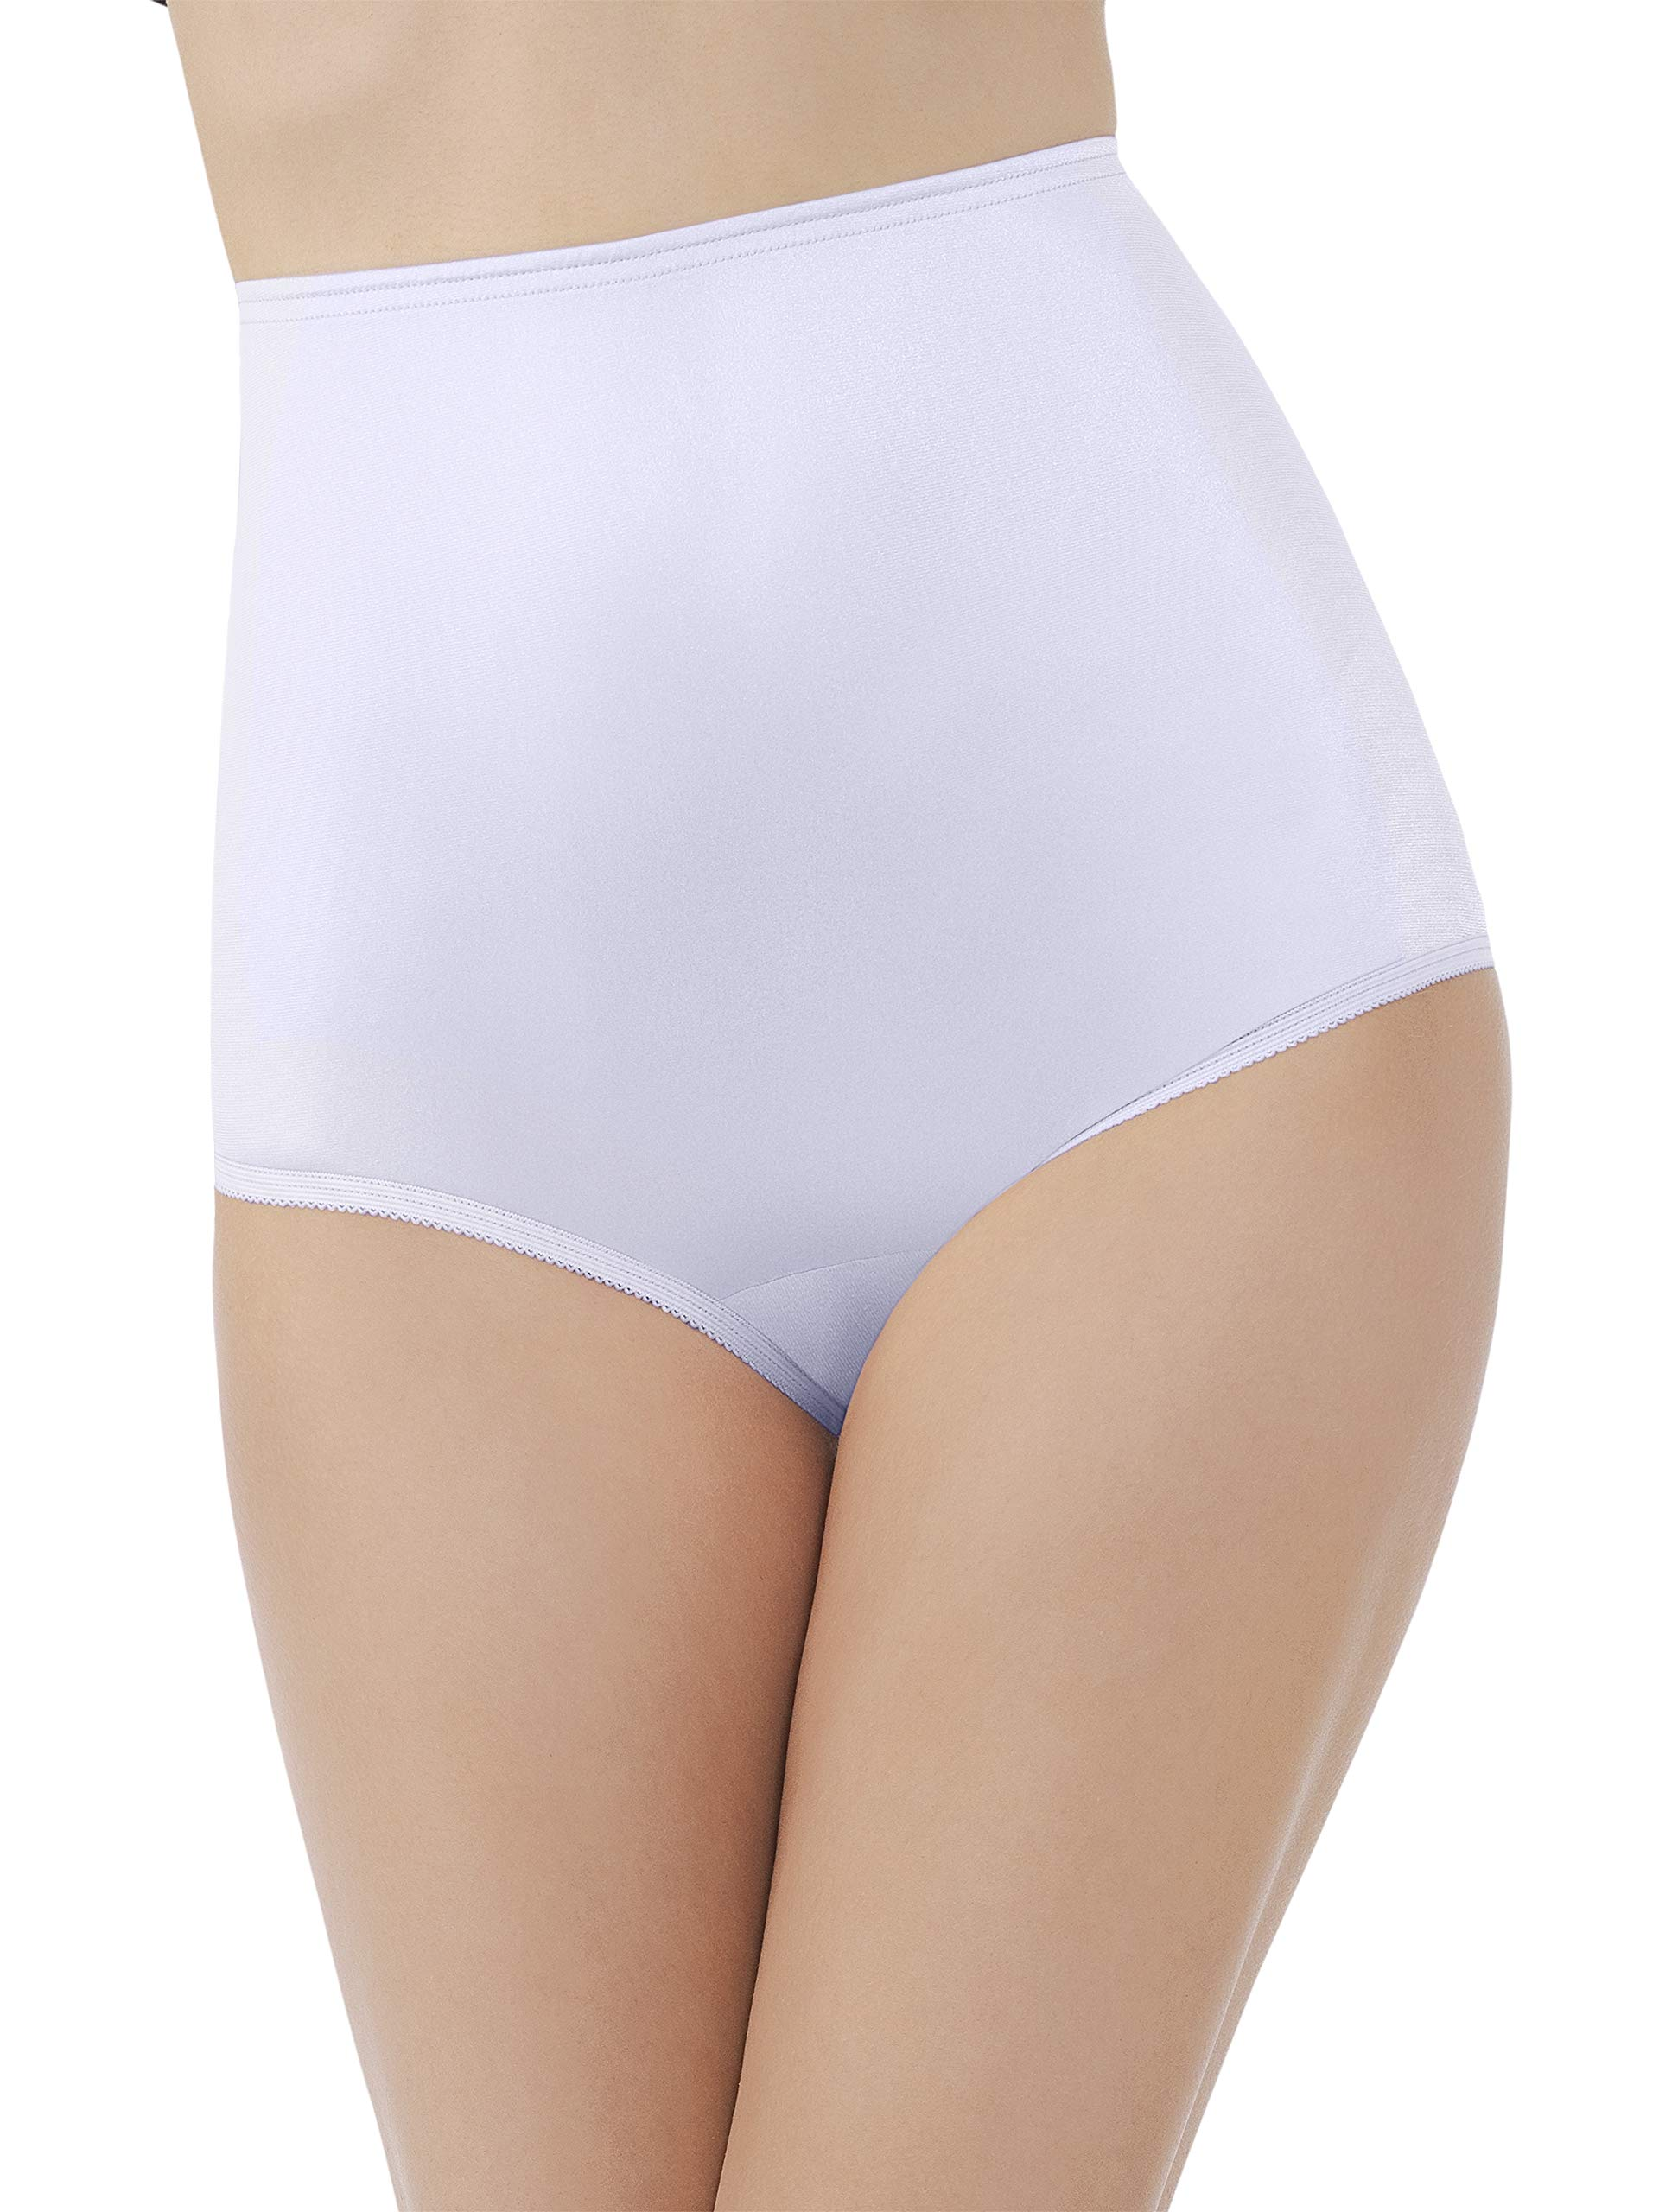 3c4163102 Galleon - Vanity Fair Women s Perfectly Yours Ravissant Tailored Nylon  Brief Panty - Size 3X-Large   10 - Star White